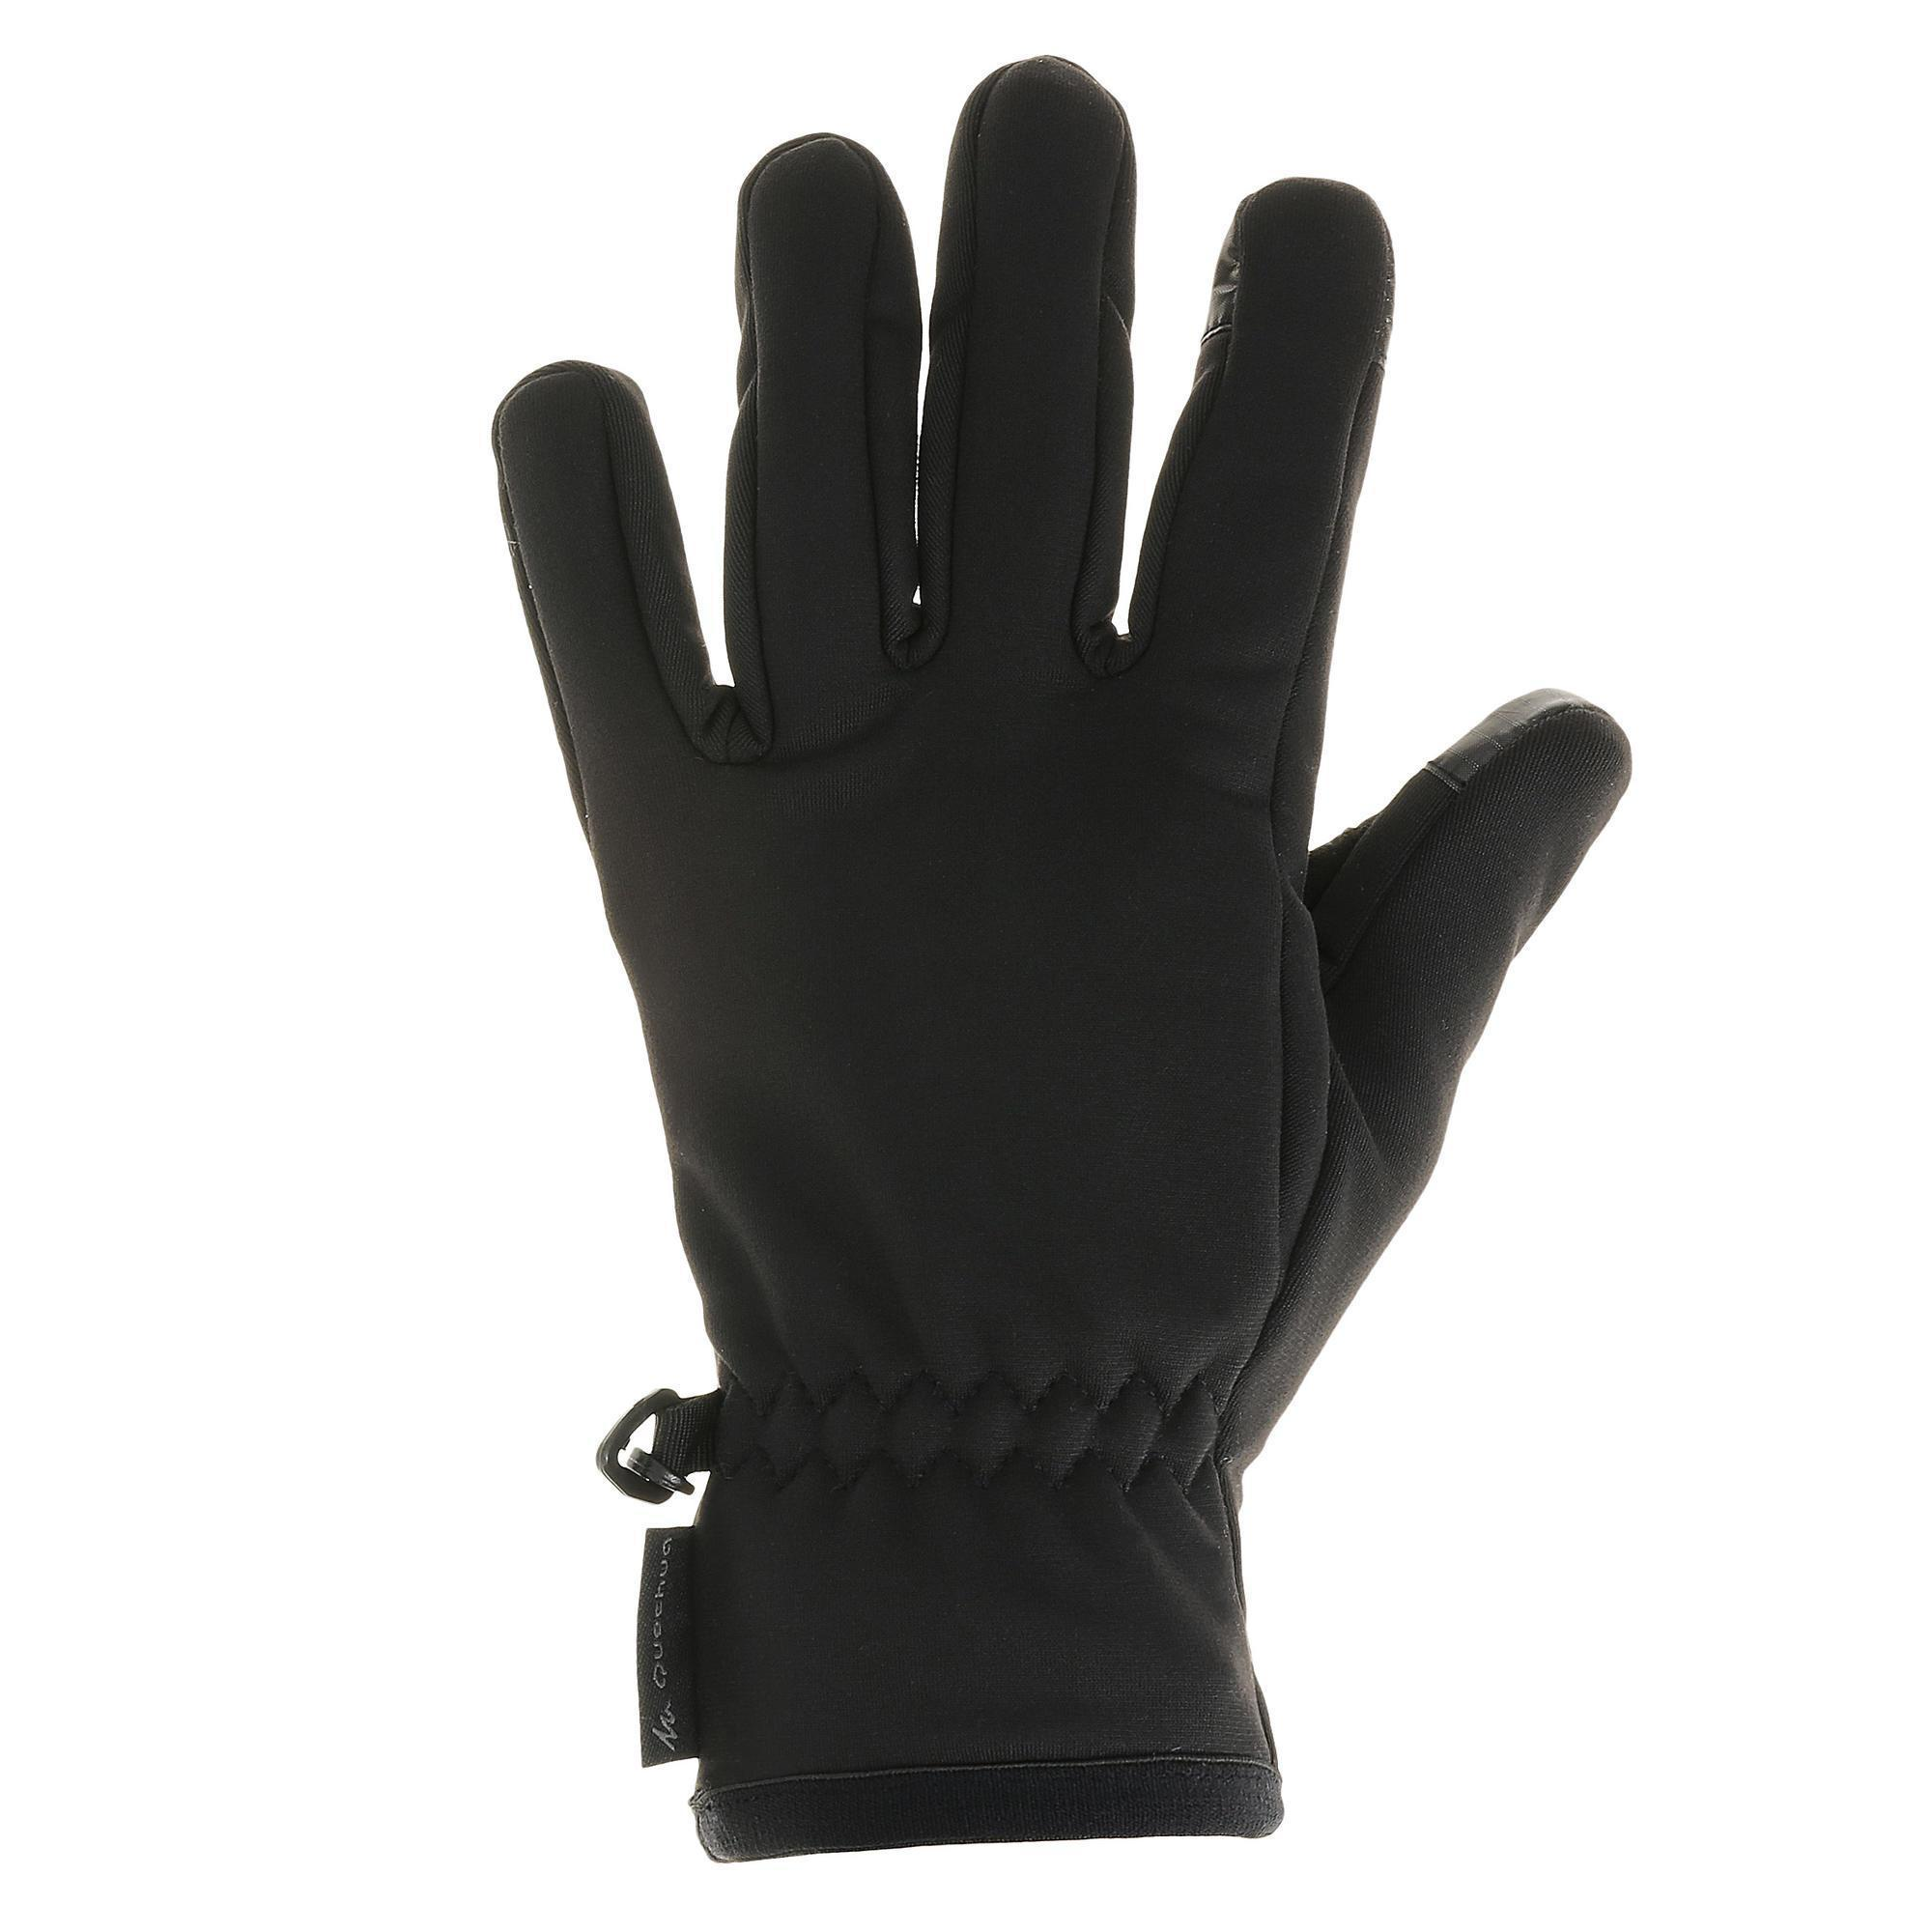 Childrens black leather gloves - Childrens Black Leather Gloves 11